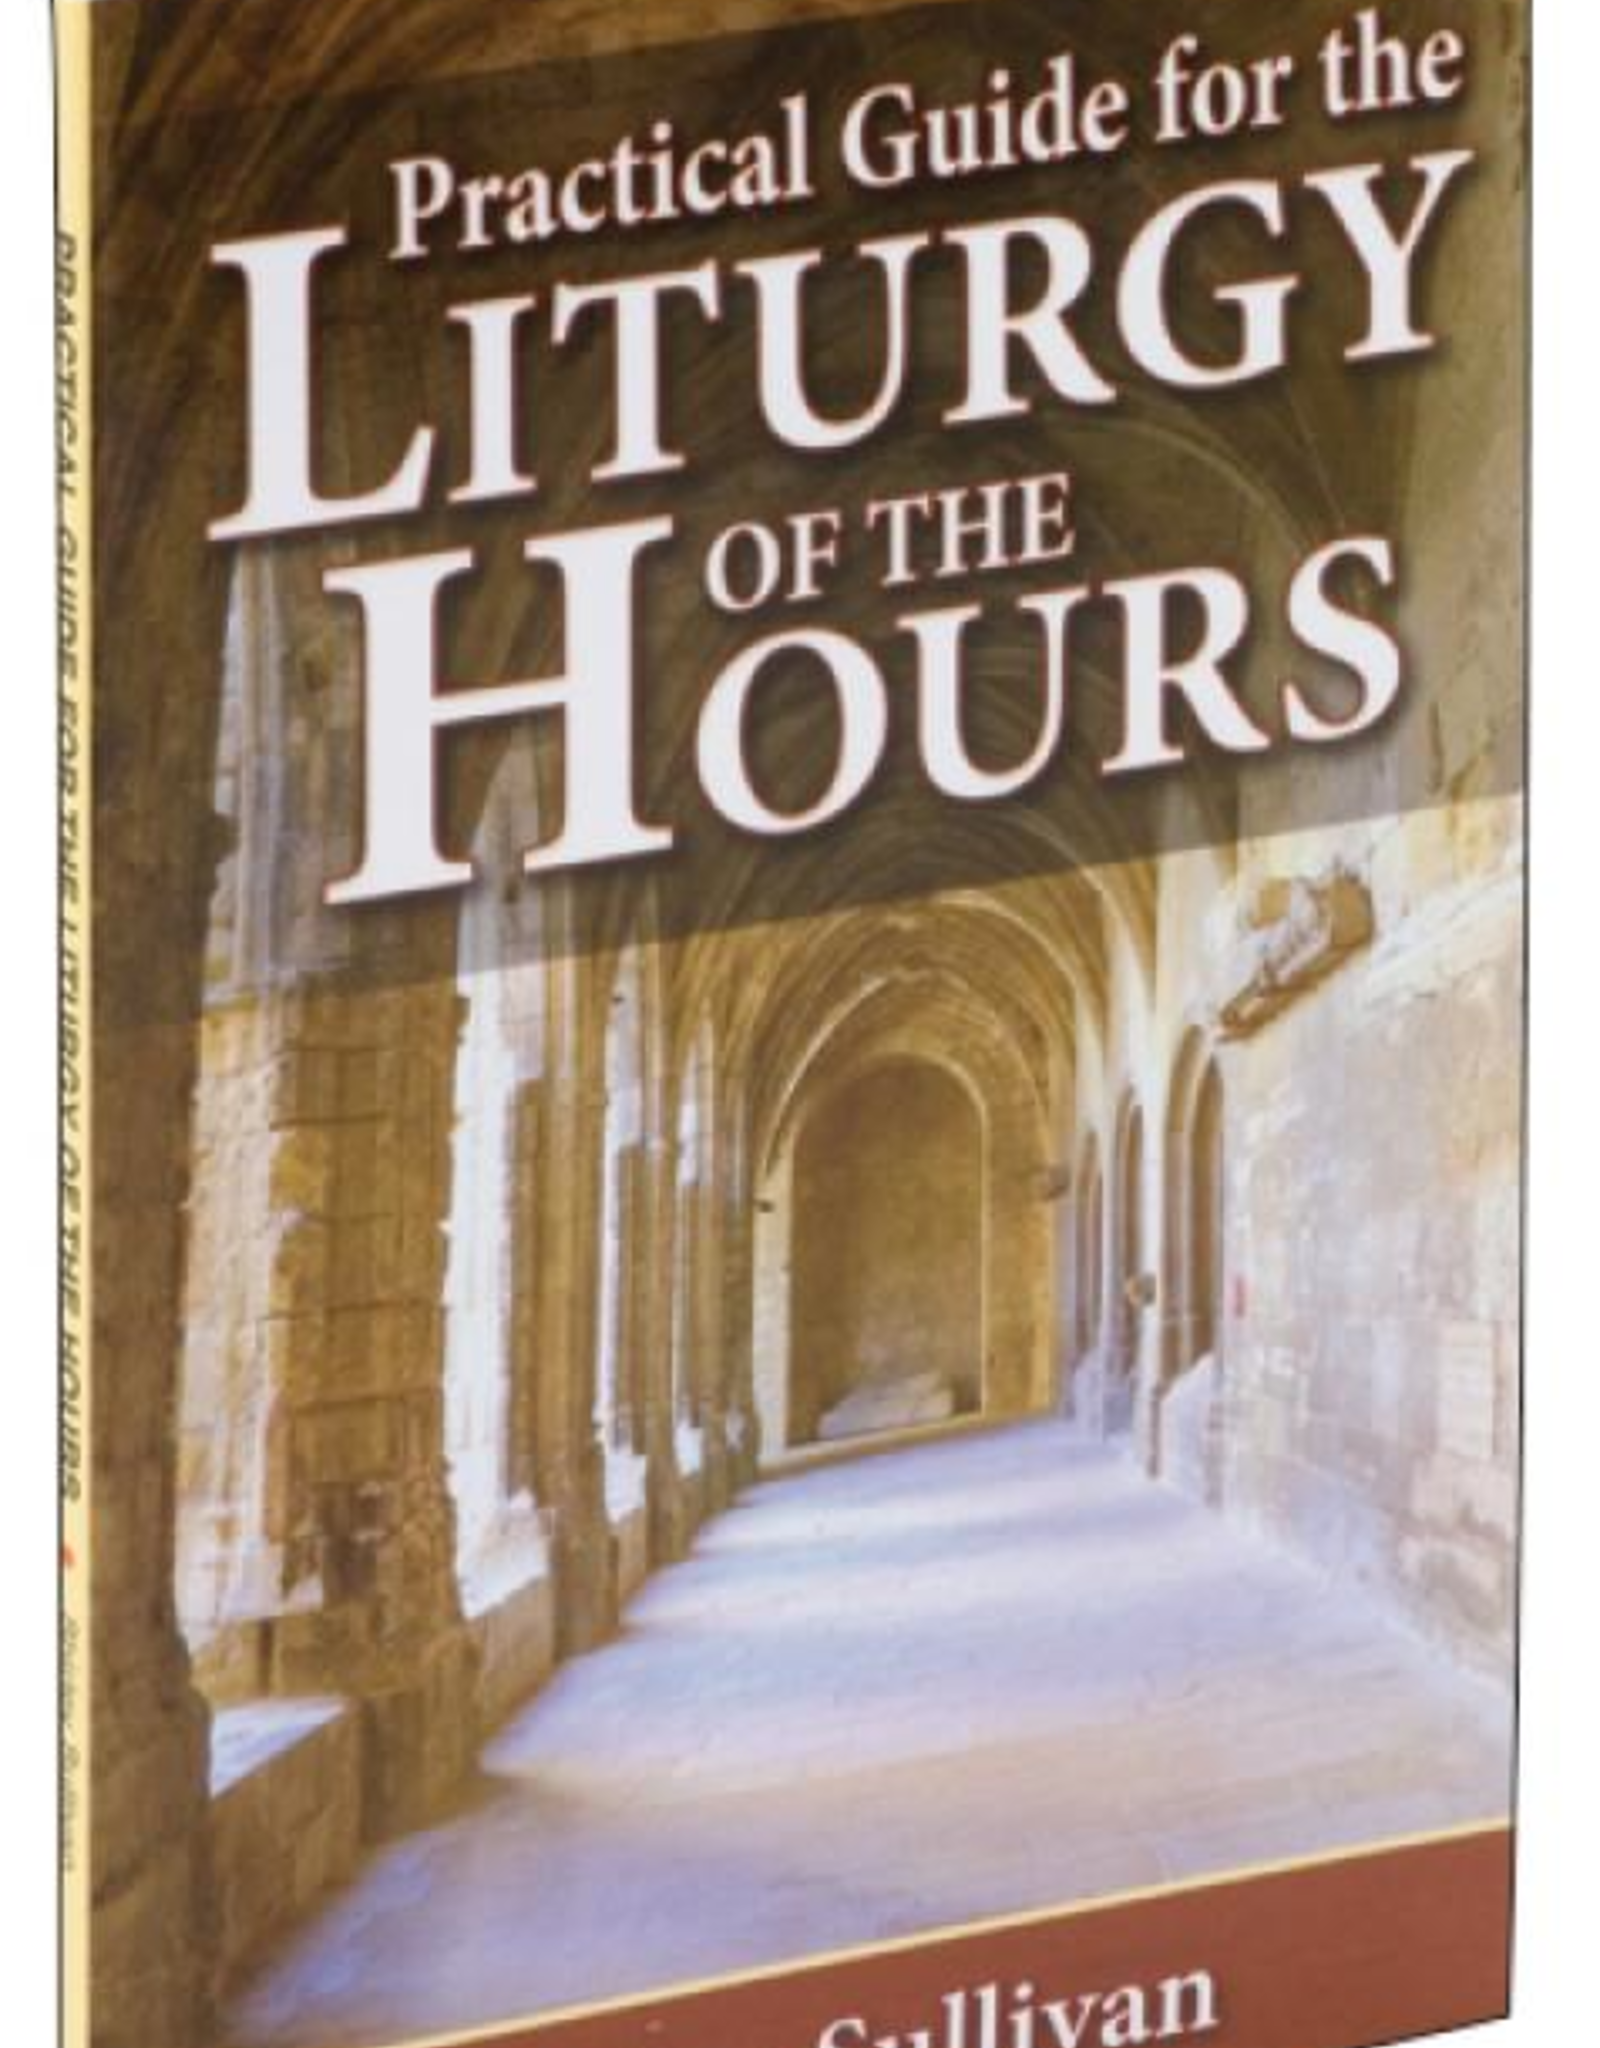 Catholic Book Publishing Practical Guide for the Liturgy of the Hours, by Shirley Sullivan